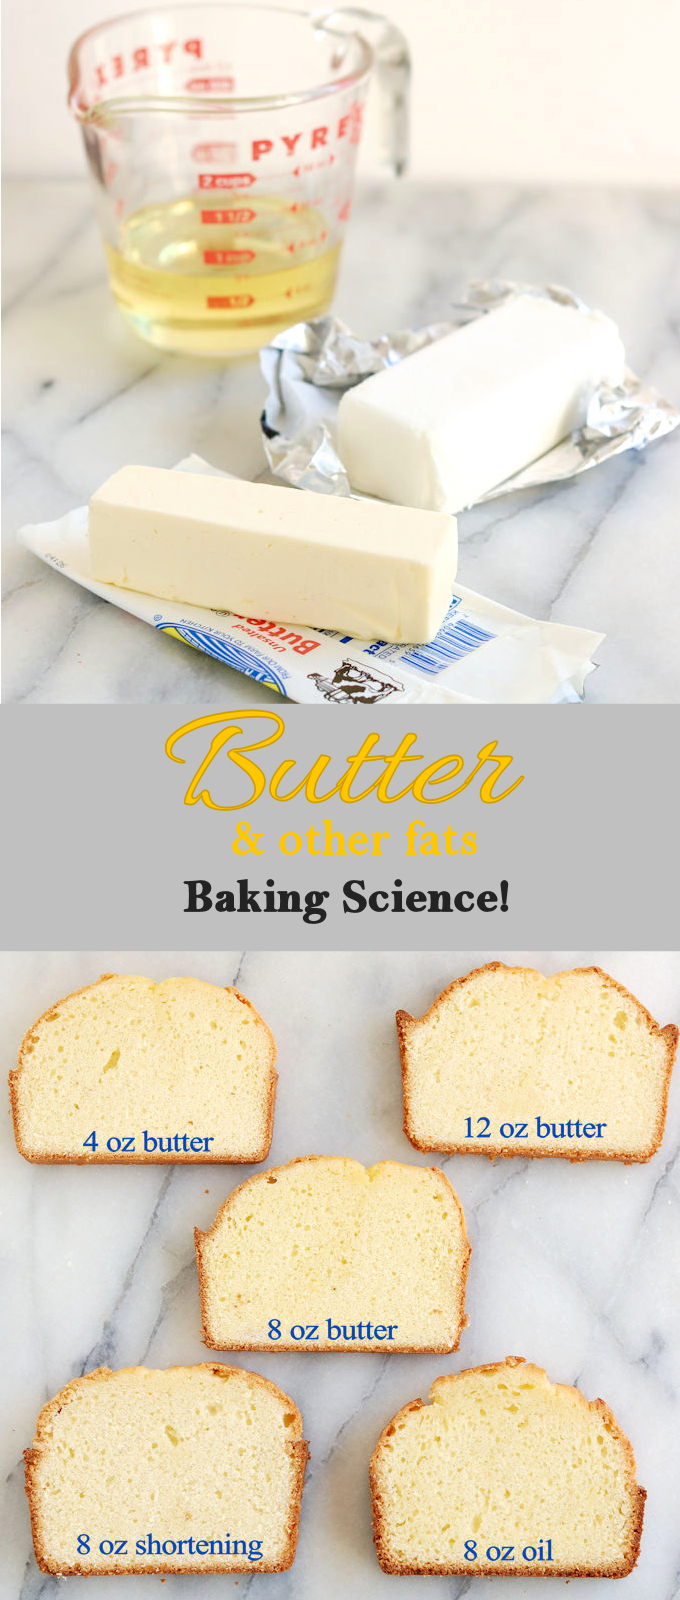 Can I Replace Butter With Shortening In A Cake Recipe